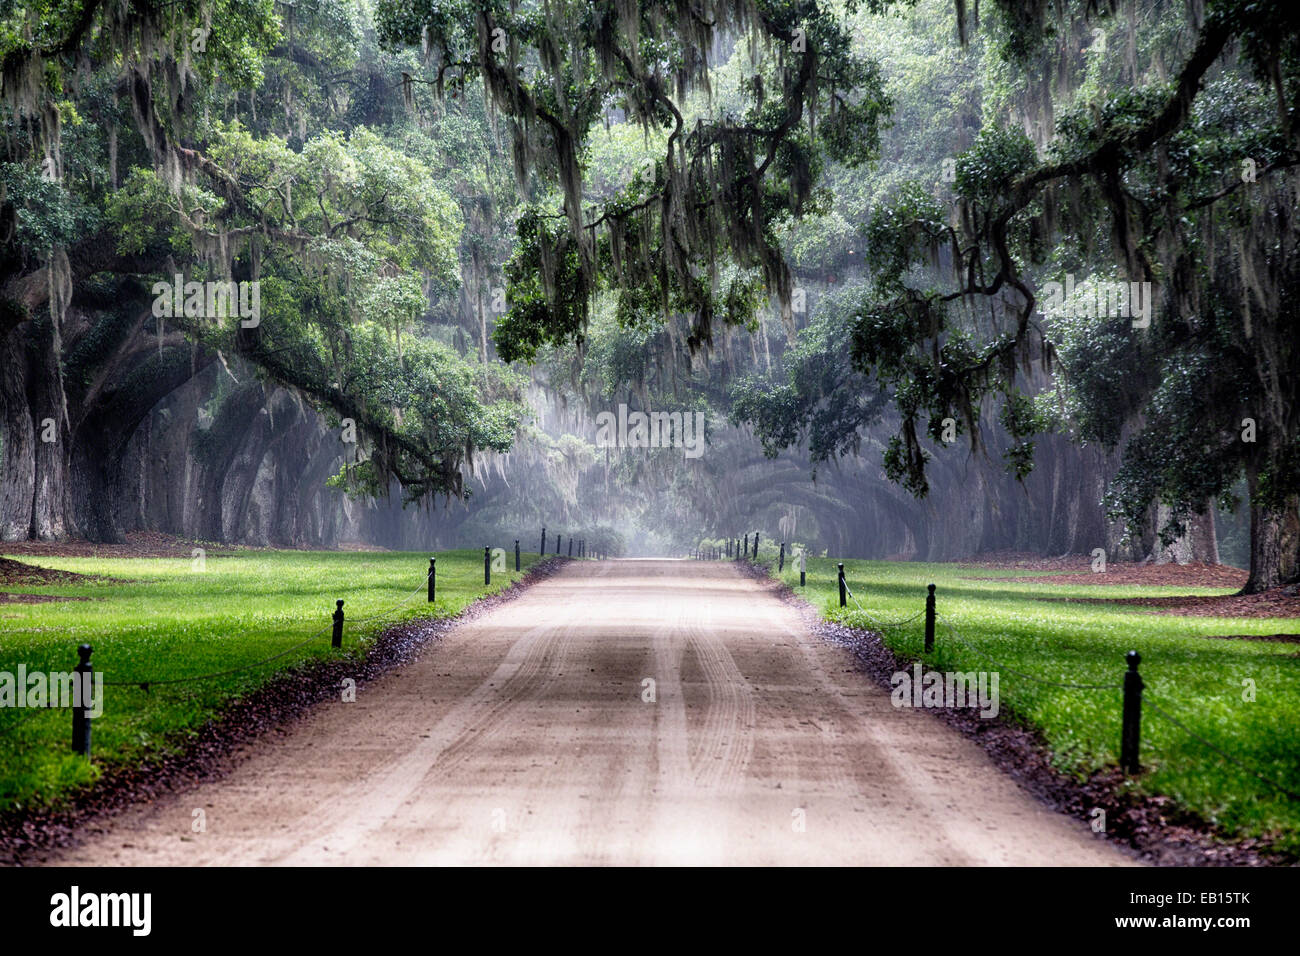 Oak Trees Branching Over a Country Road, Avenue of Oaks, Boone Hall Plantation, Mt Pleasant, South Carolina - Stock Image